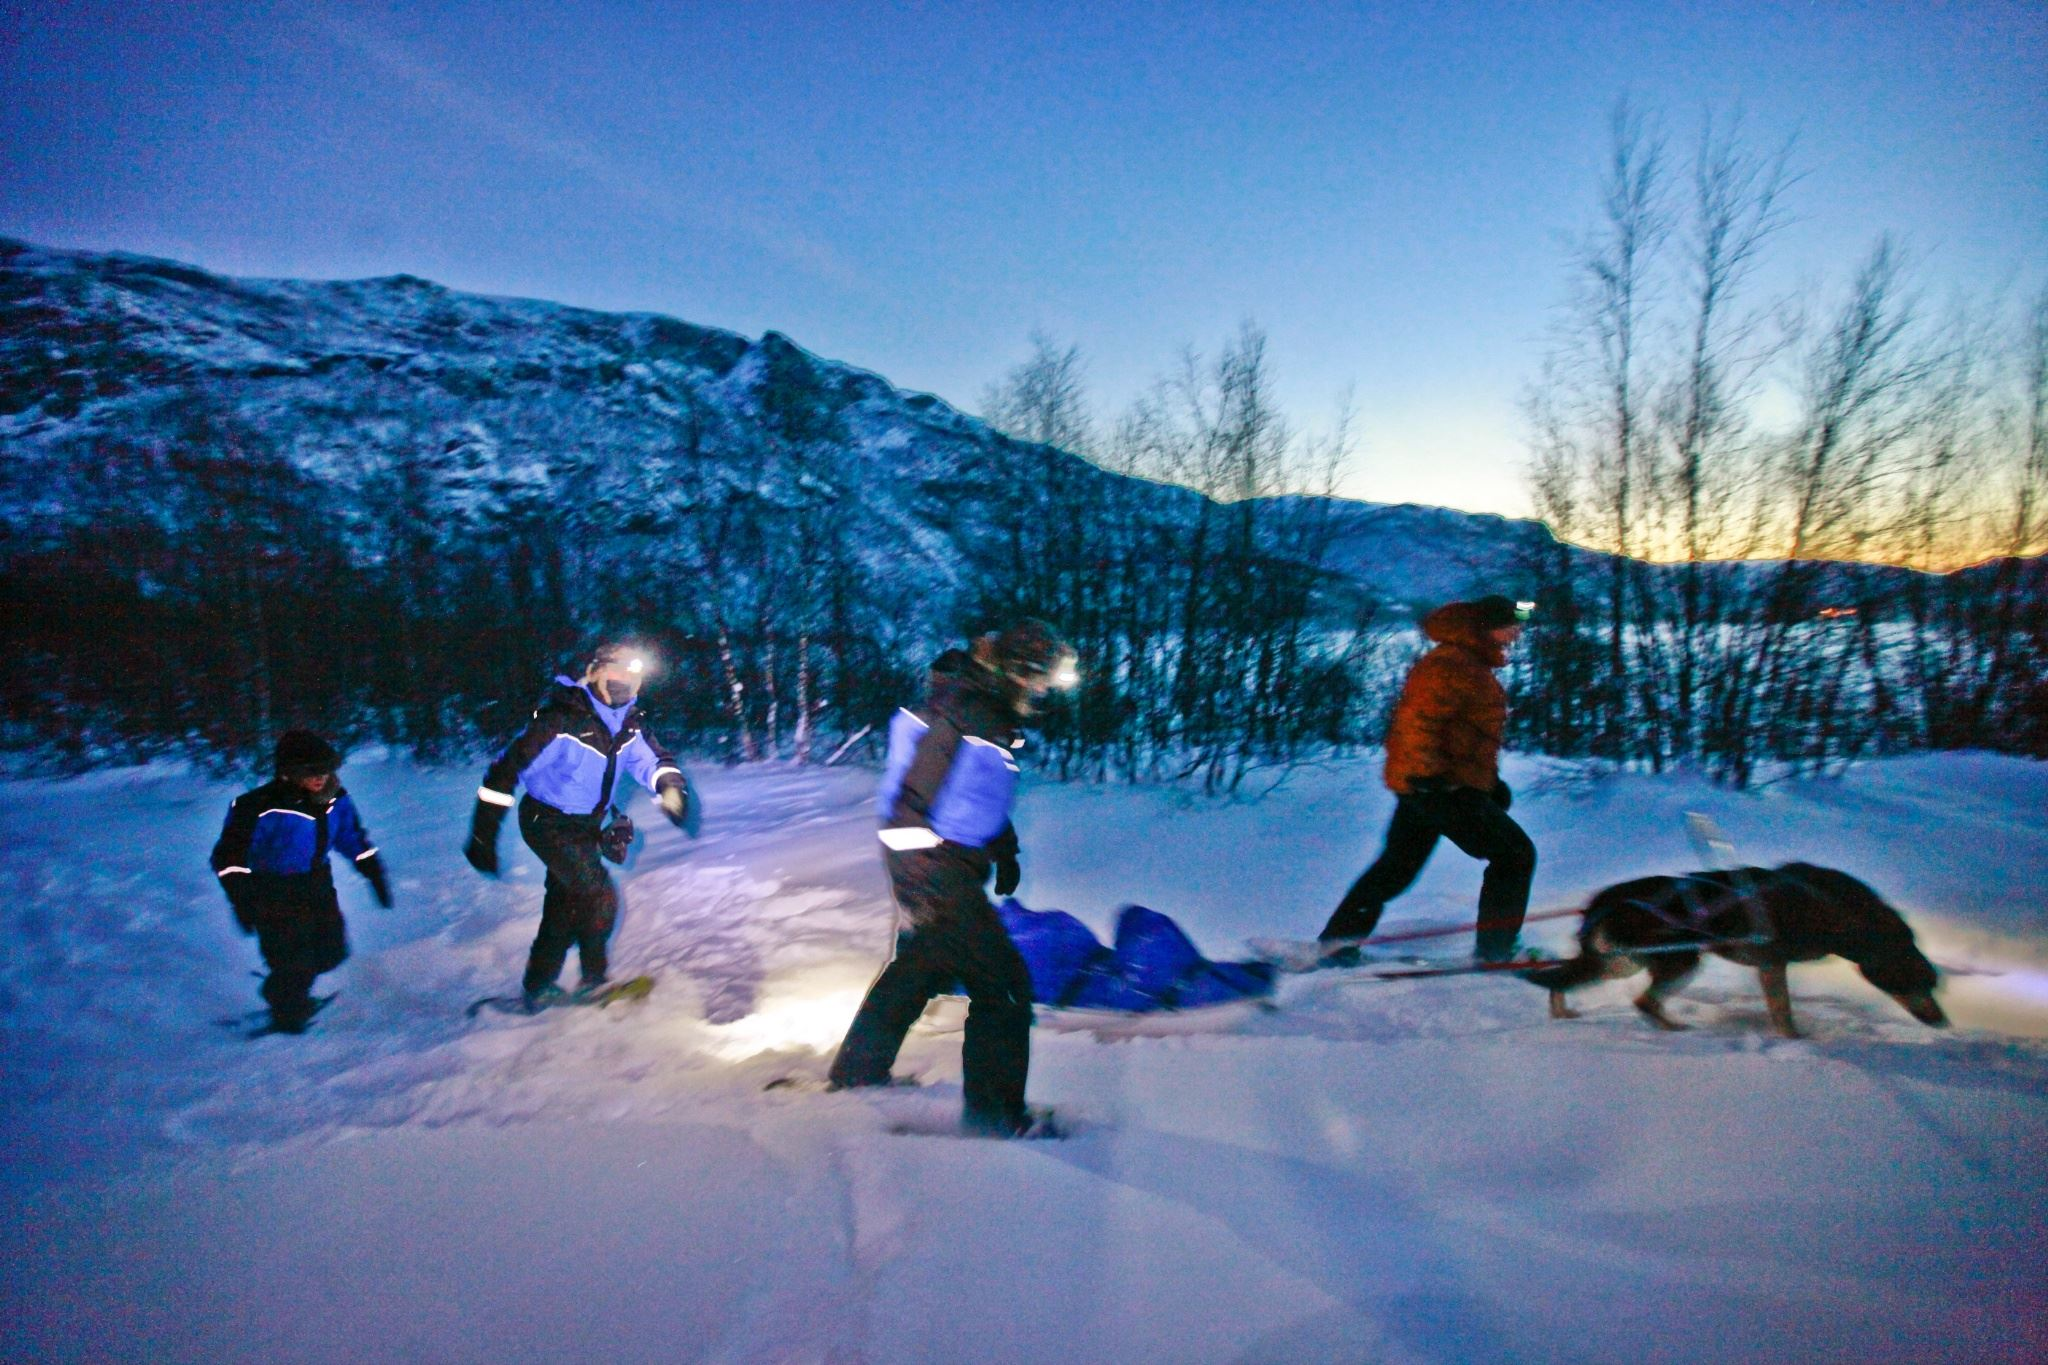 Ski trek across the plains of Finnmark - 4 day expedition